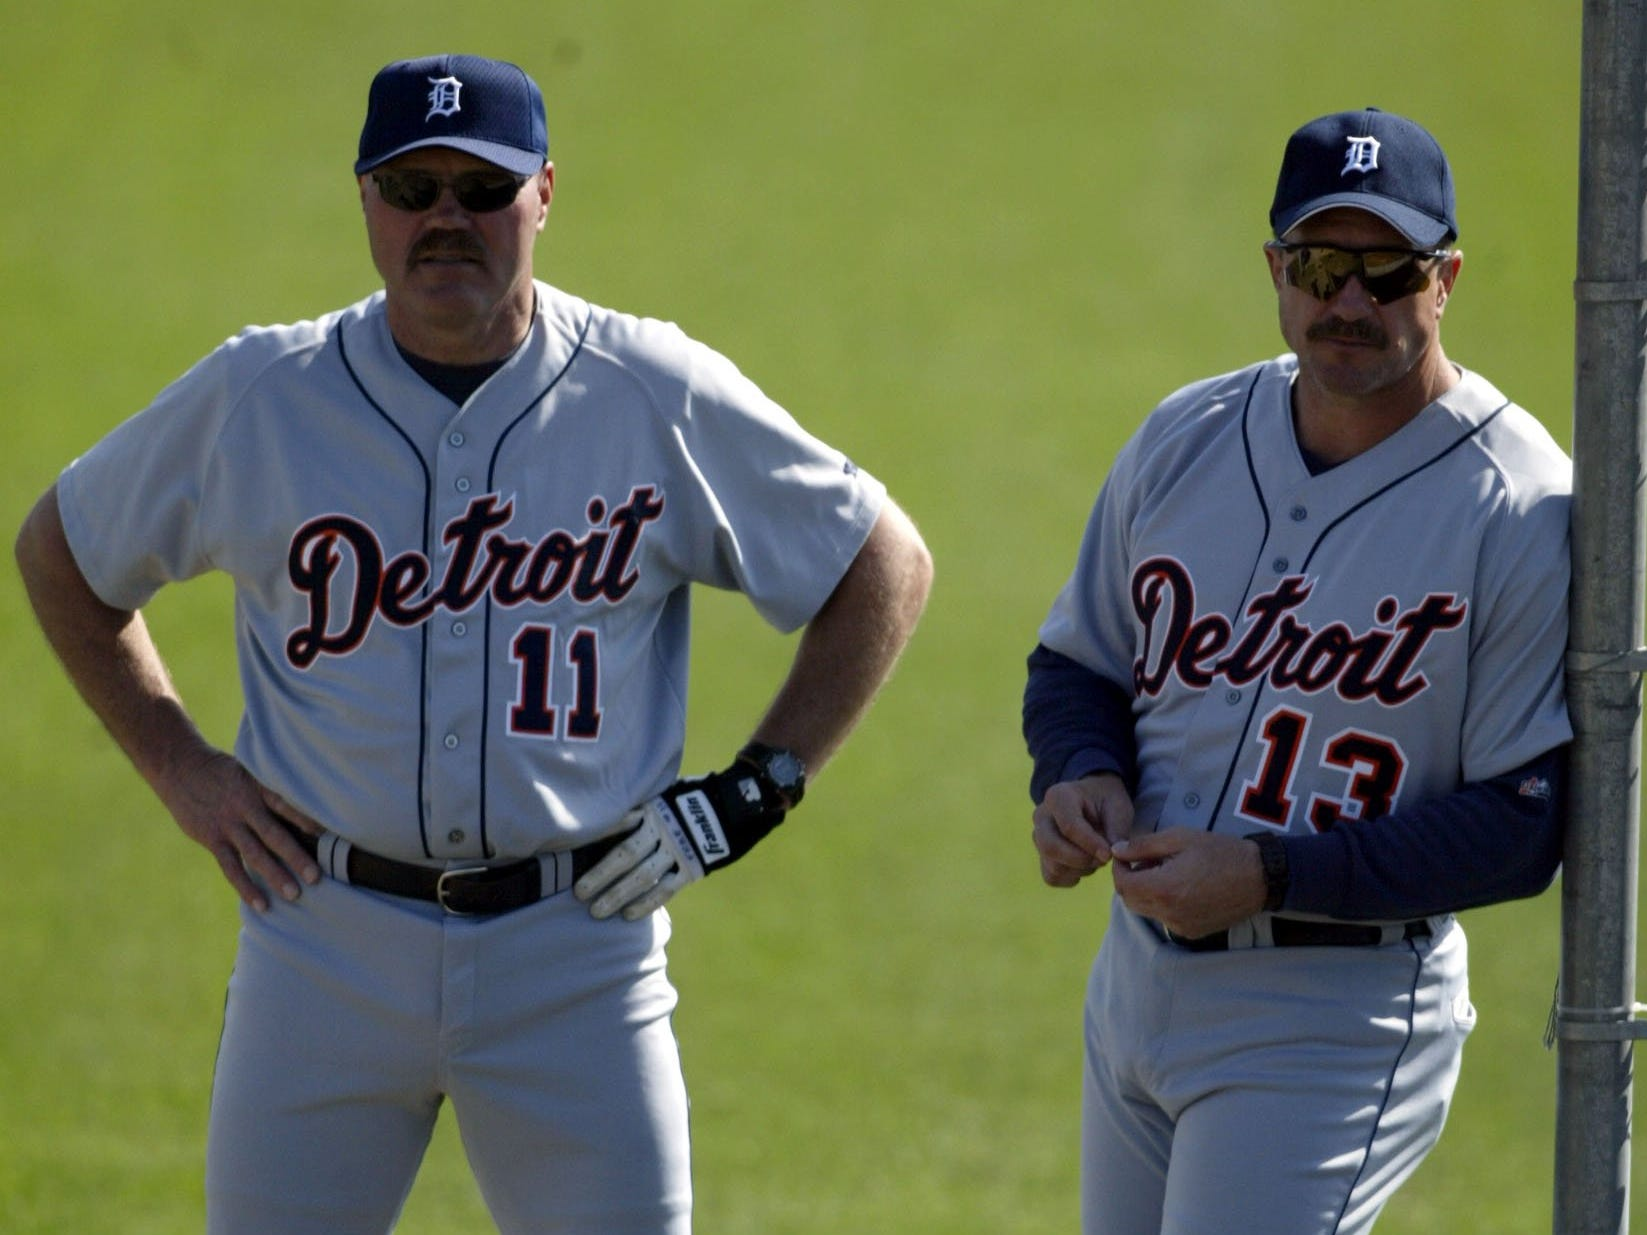 Former Tigers catchers Bill Freehan, left, and Lance Parrish, right, watch pitchers warmup during the morning workout at the Tigers spring training complex in Lakeland, Fla., on Saturday, Feb. 15, 2003.